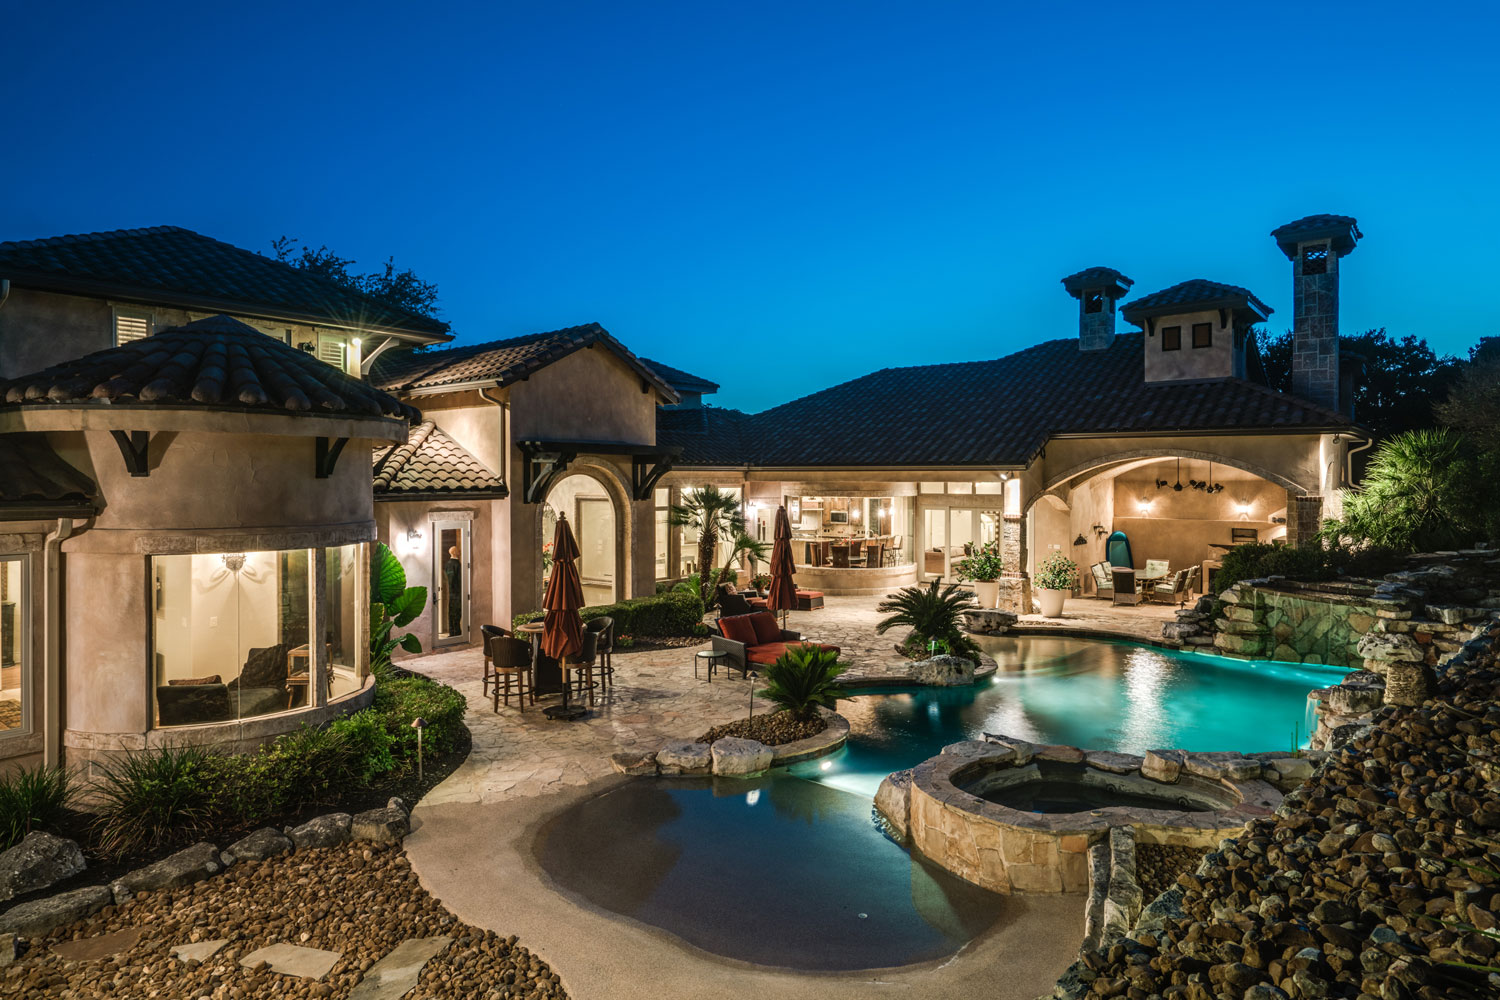 Everything is bigger in Texas: This ultra-luxurious Hill Country estate evokes the splendor of the Tuscan countryside yet with 21st-century creature comforts—Texas style.